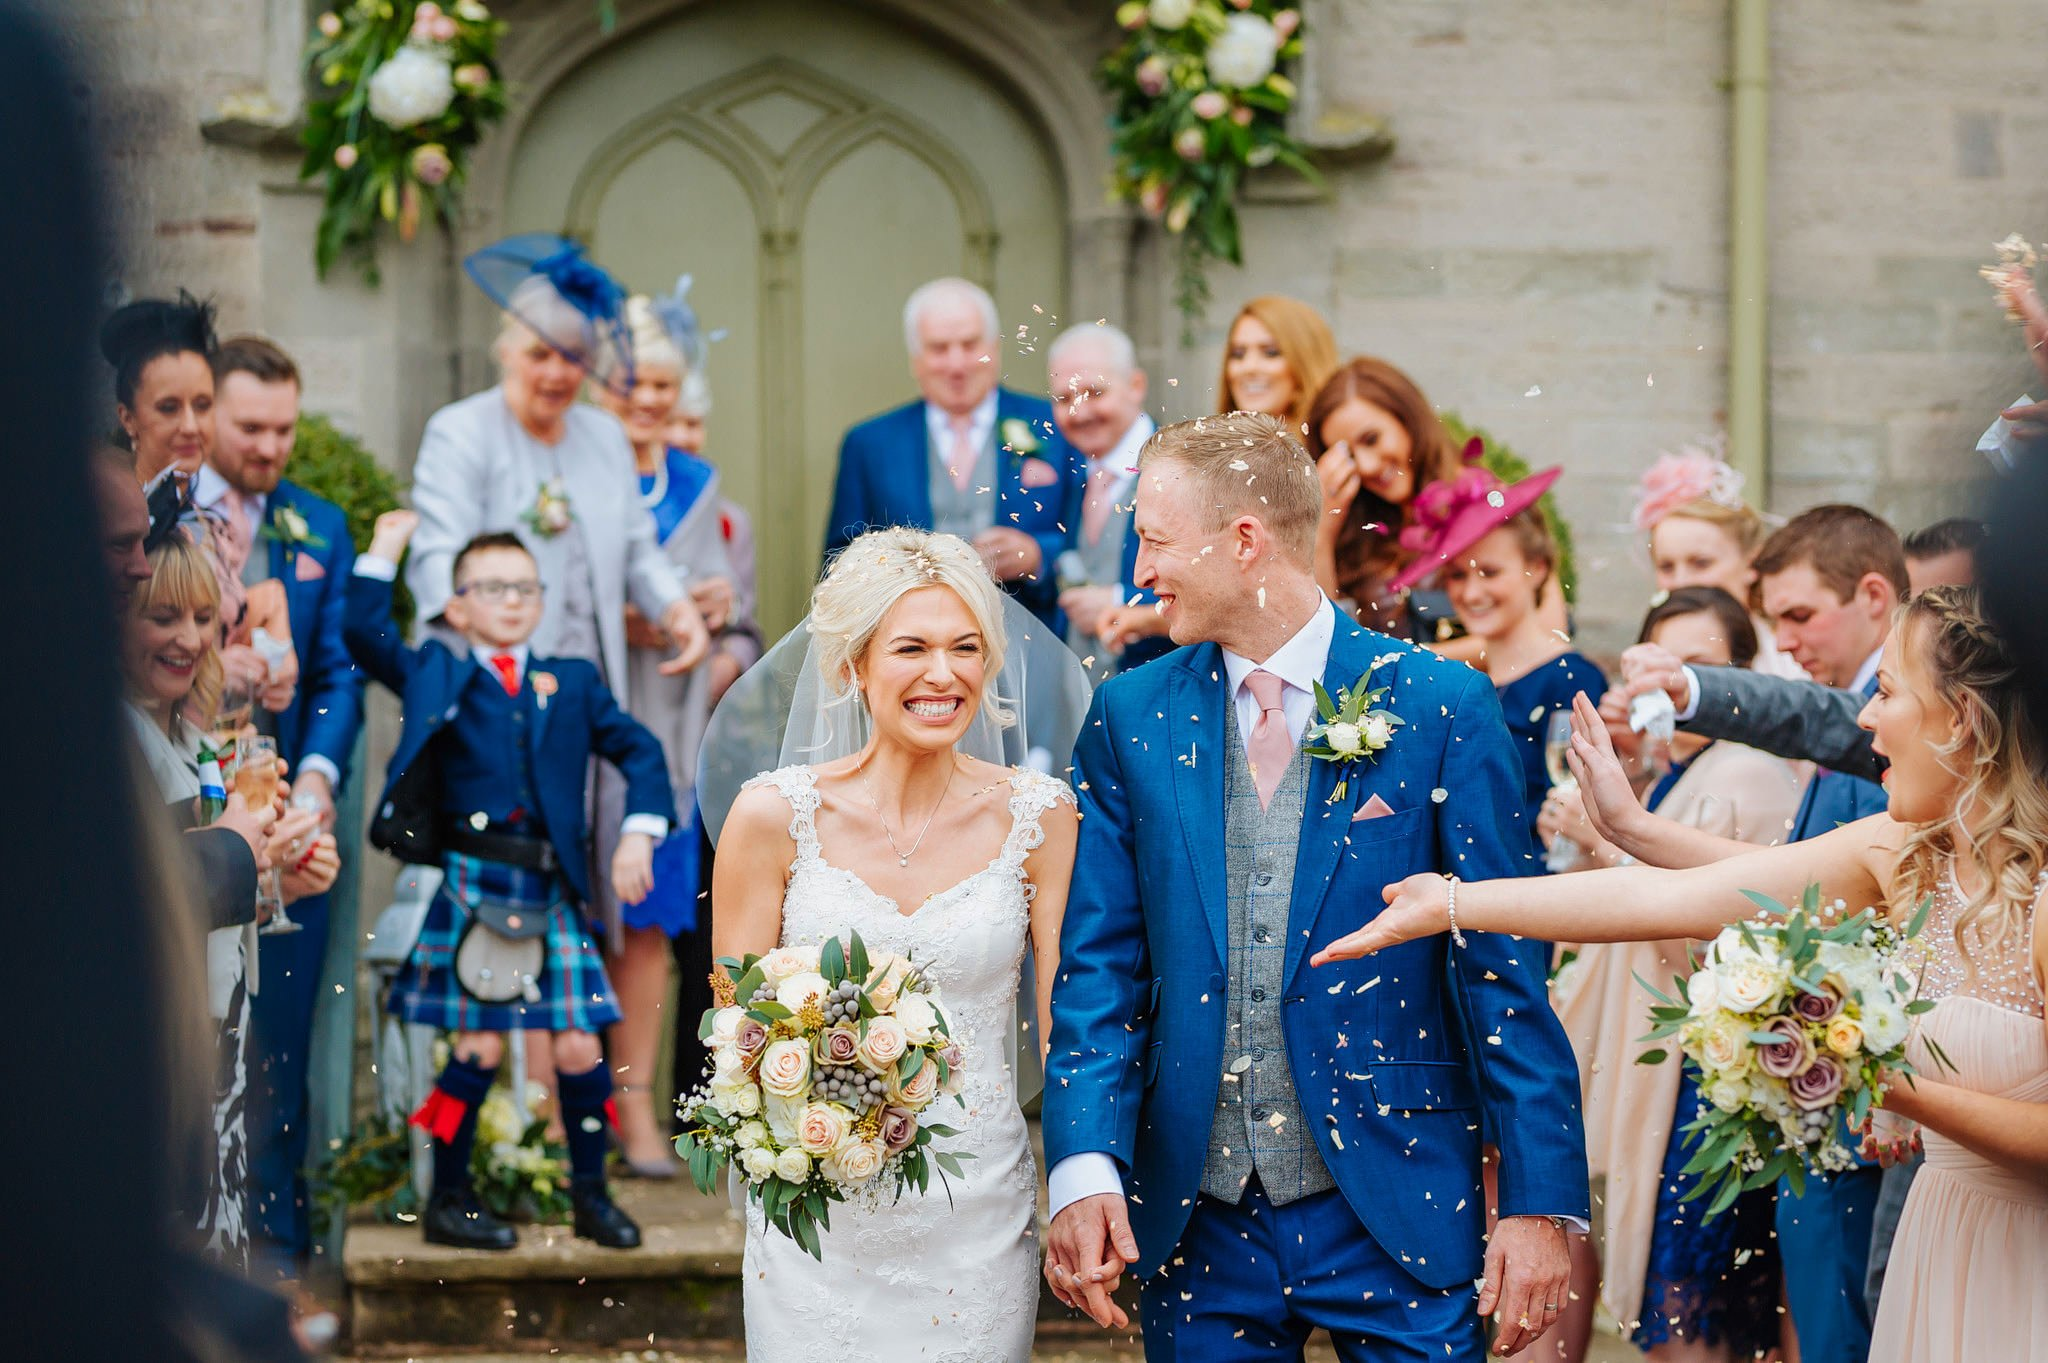 Sigma 85mm F1.4 ART review vs Wedding Photography 14